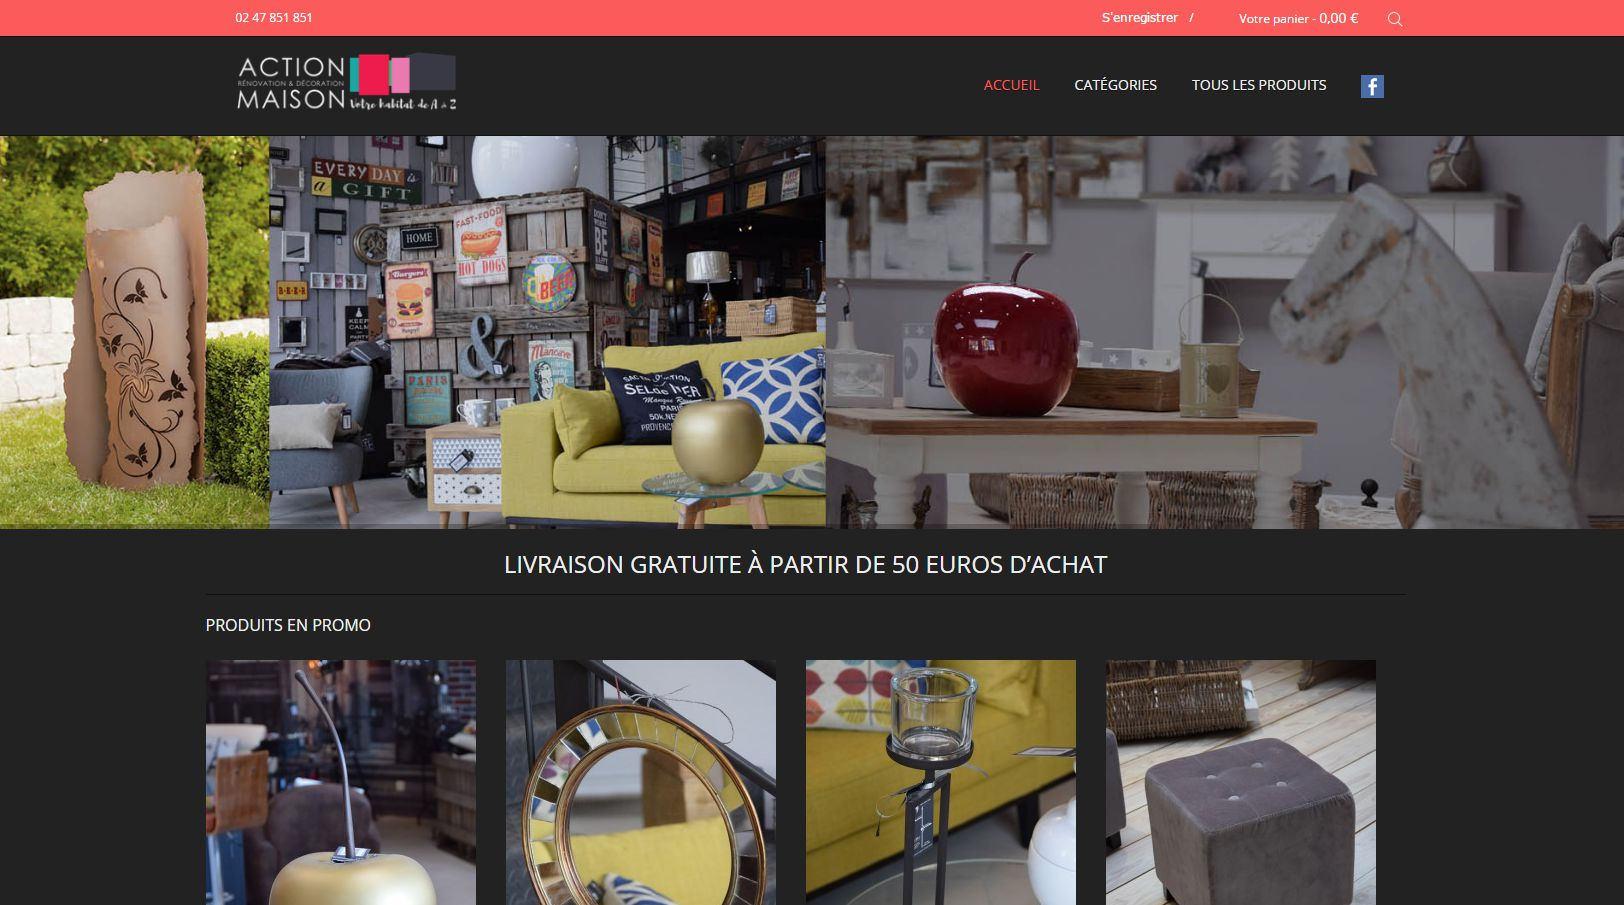 Action maison shop magasin de vente en ligne for Actions maisons